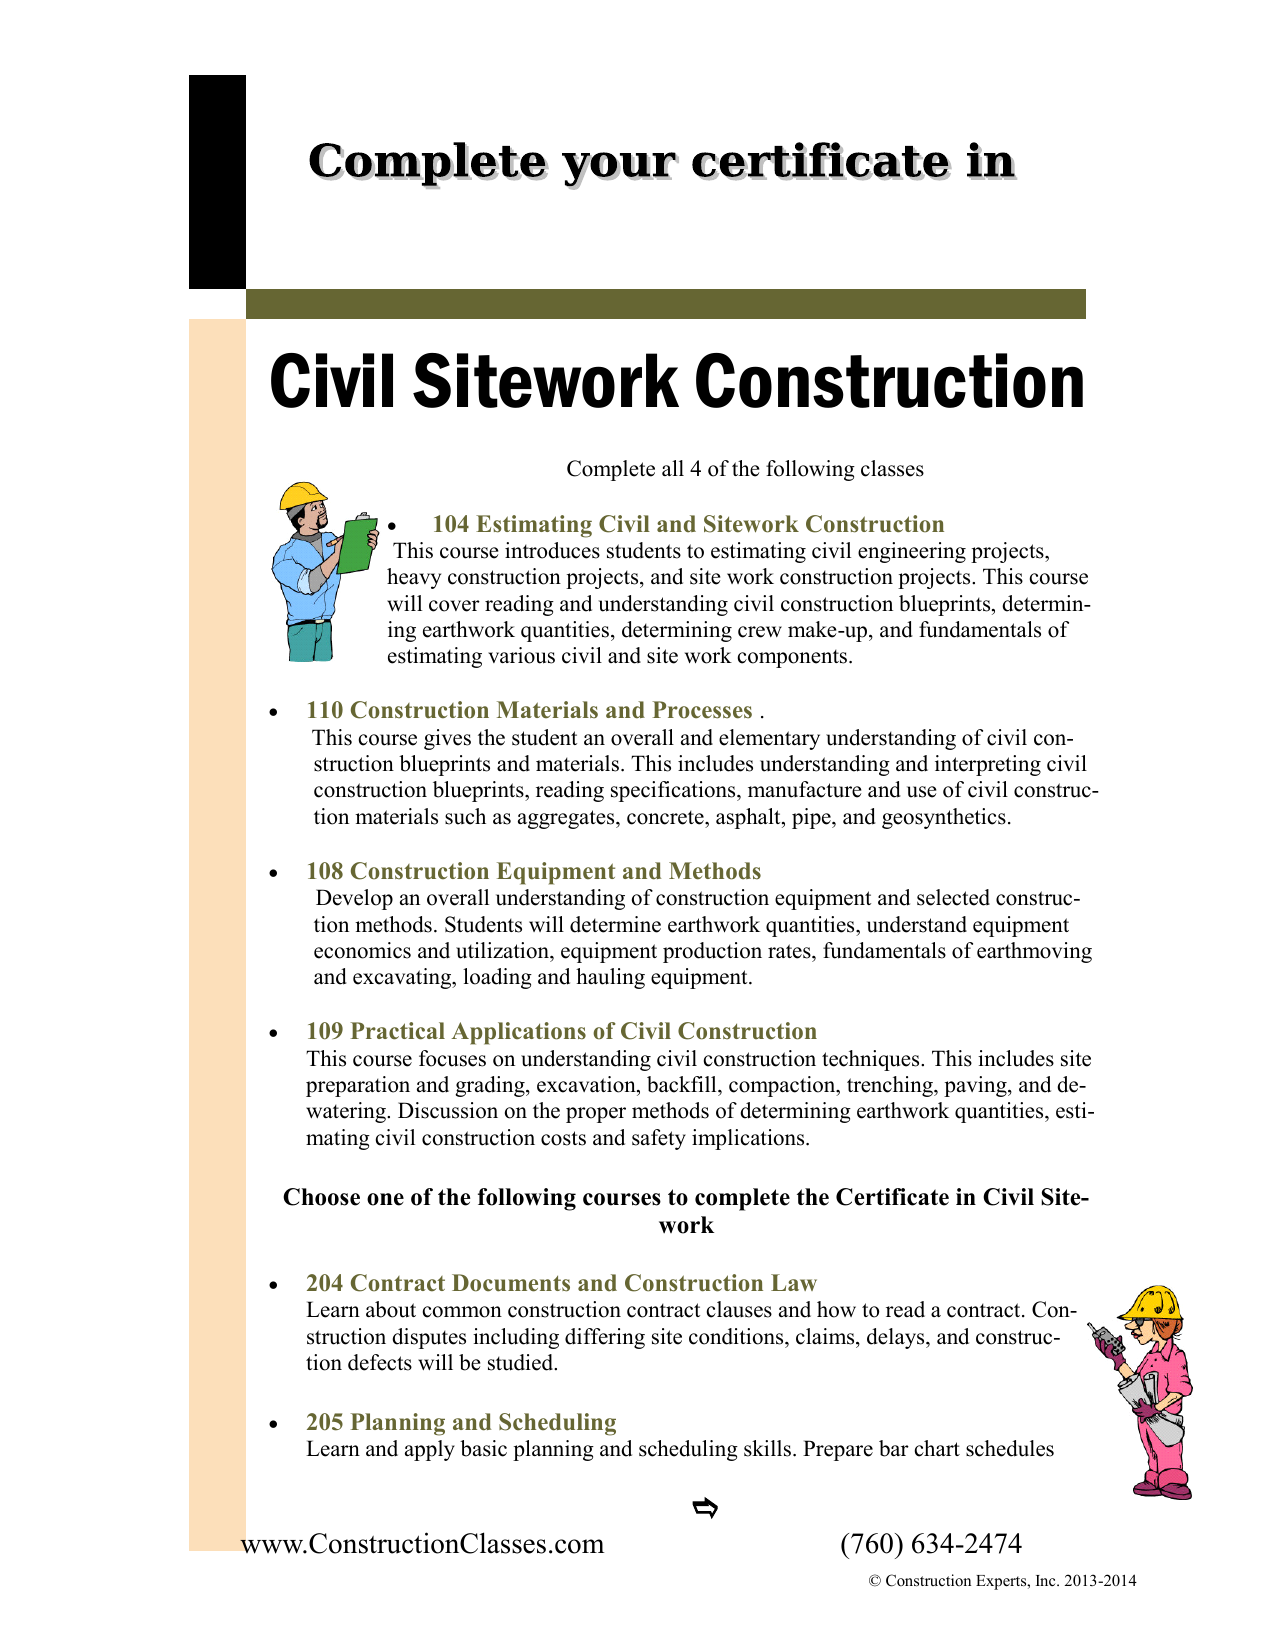 Certificate in Civil Sitework Construction